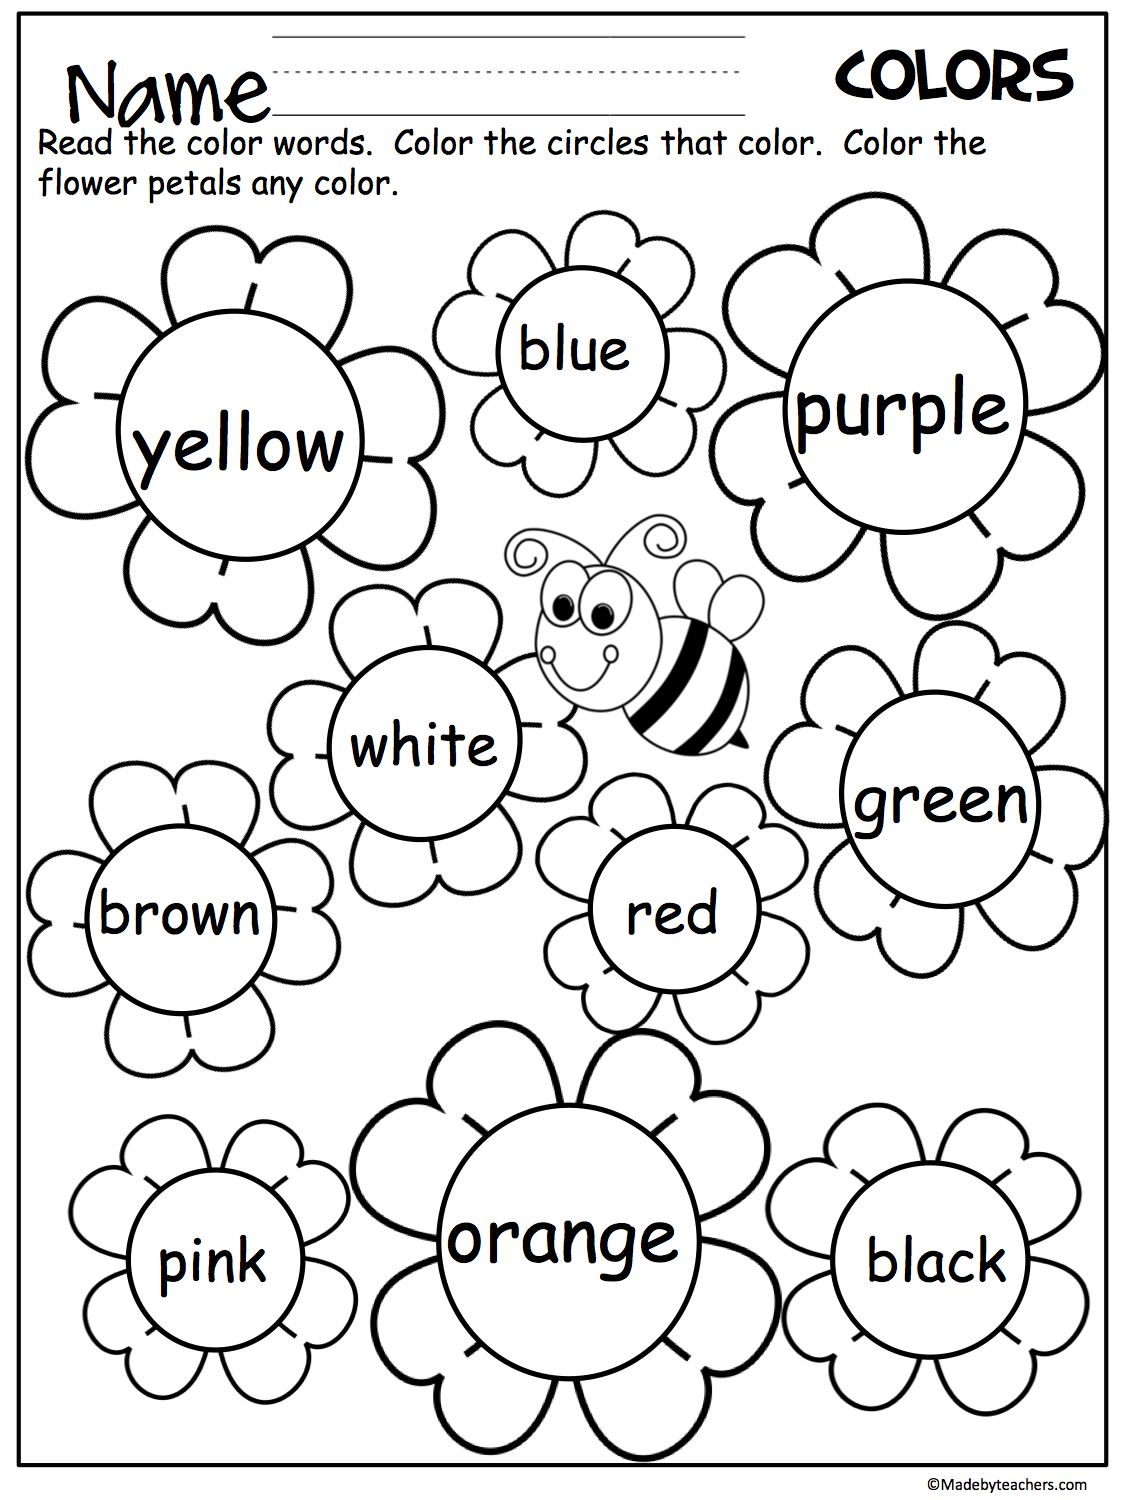 Flower Color Words Worksheet With Images